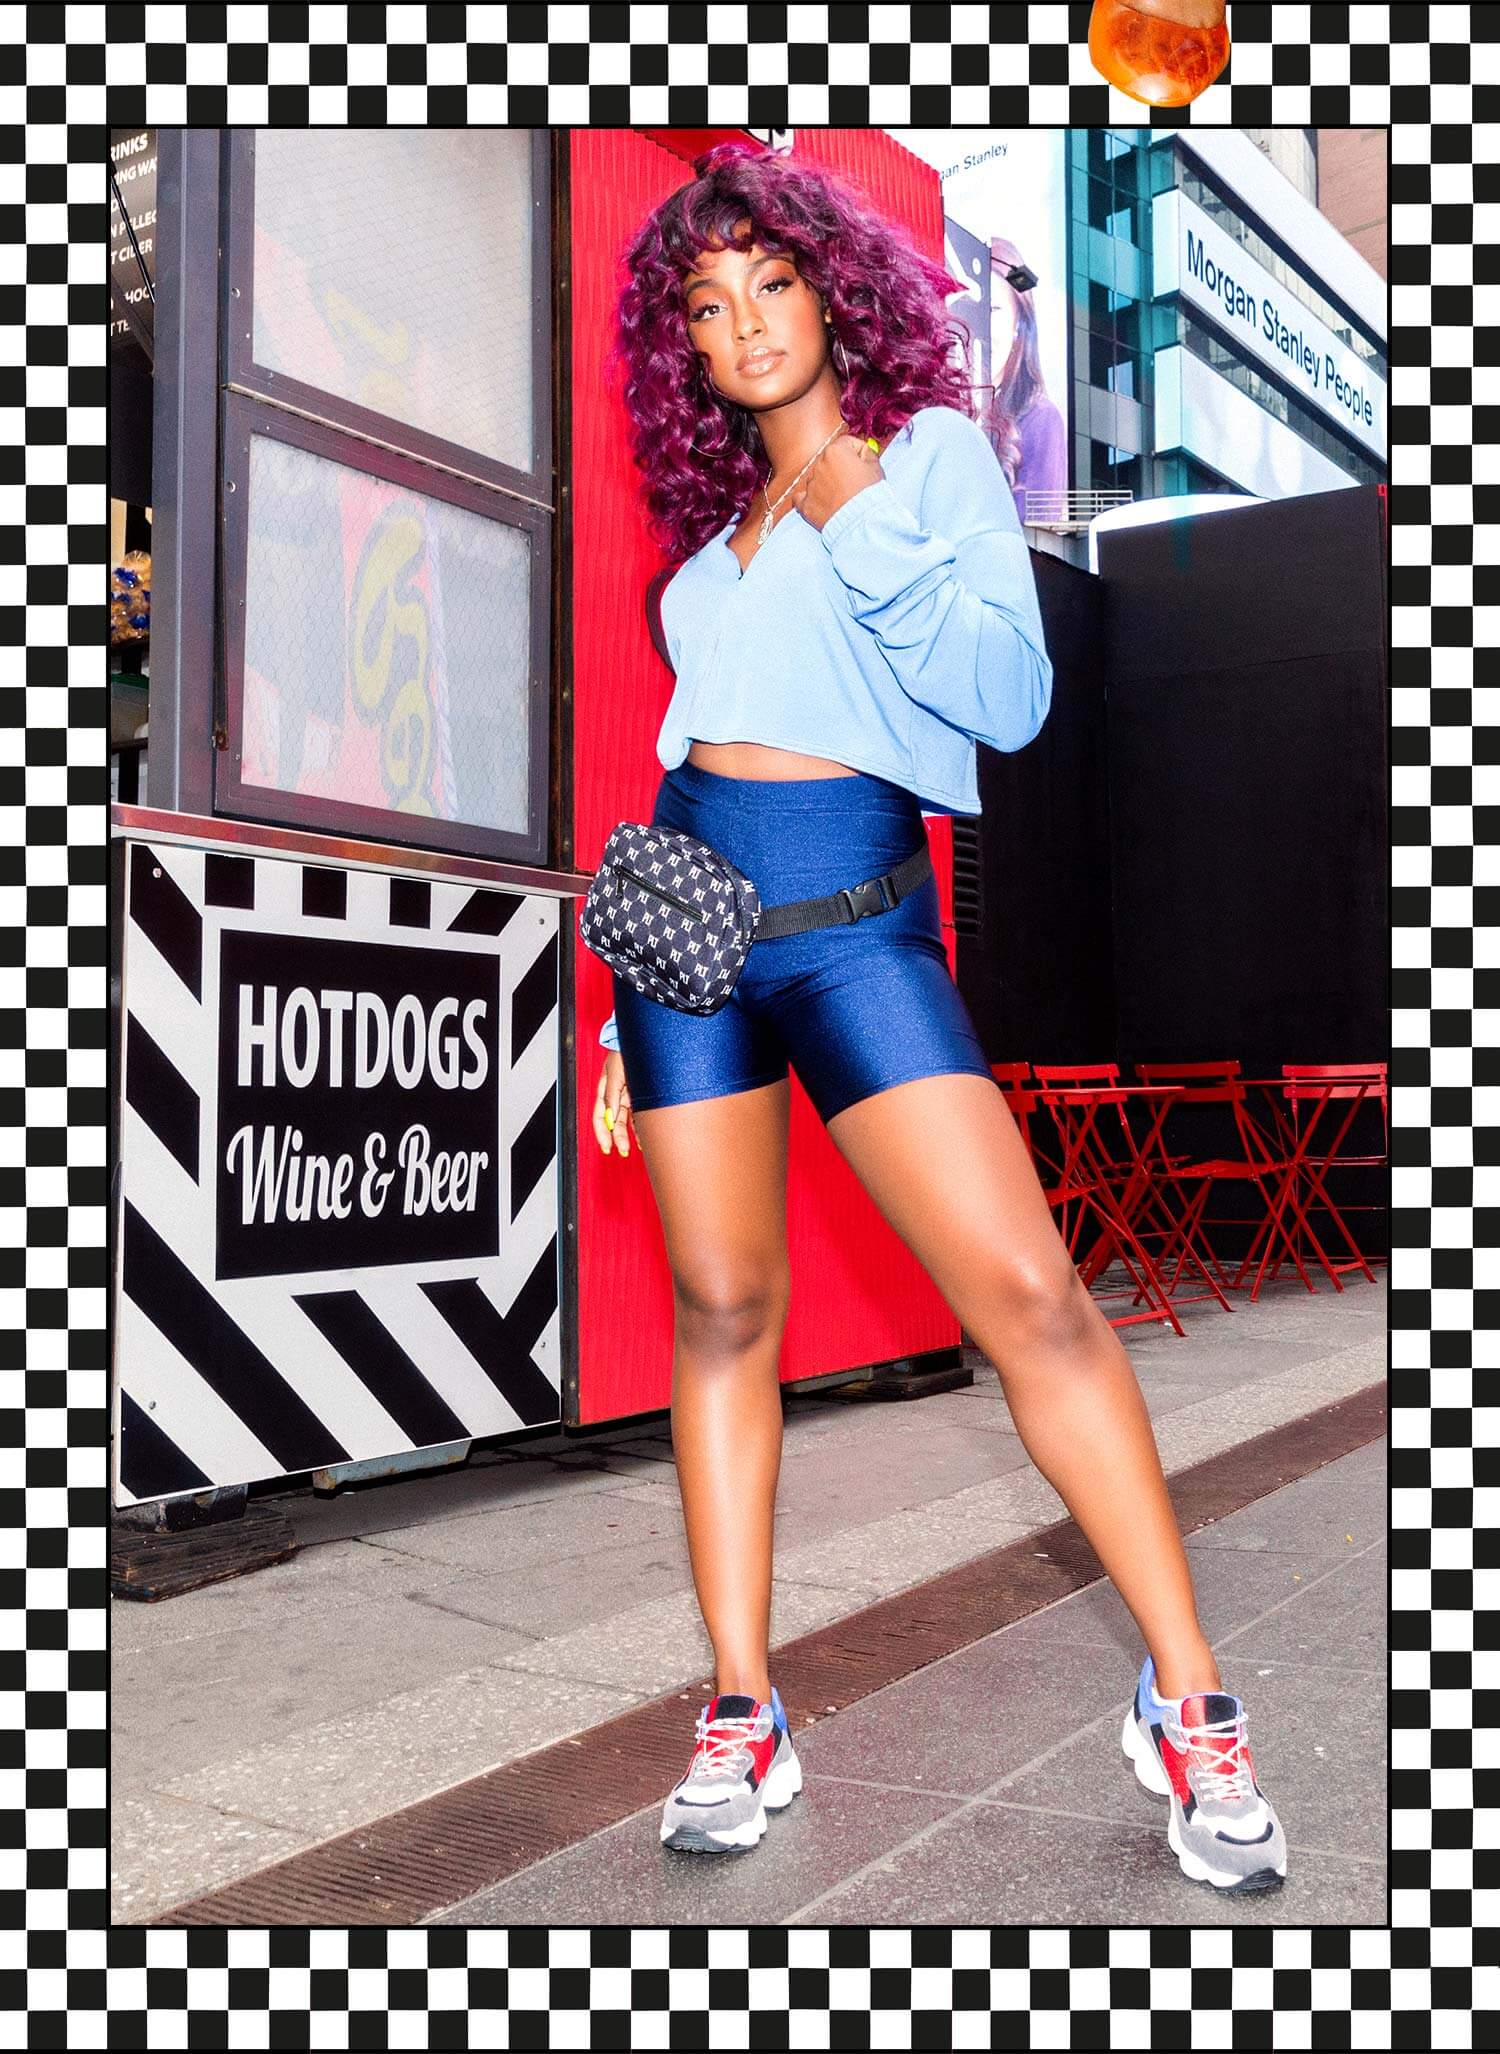 Justine Skye Shoot 2 Blue Cropped Sweater & Blue Cycle Shorts Mobile